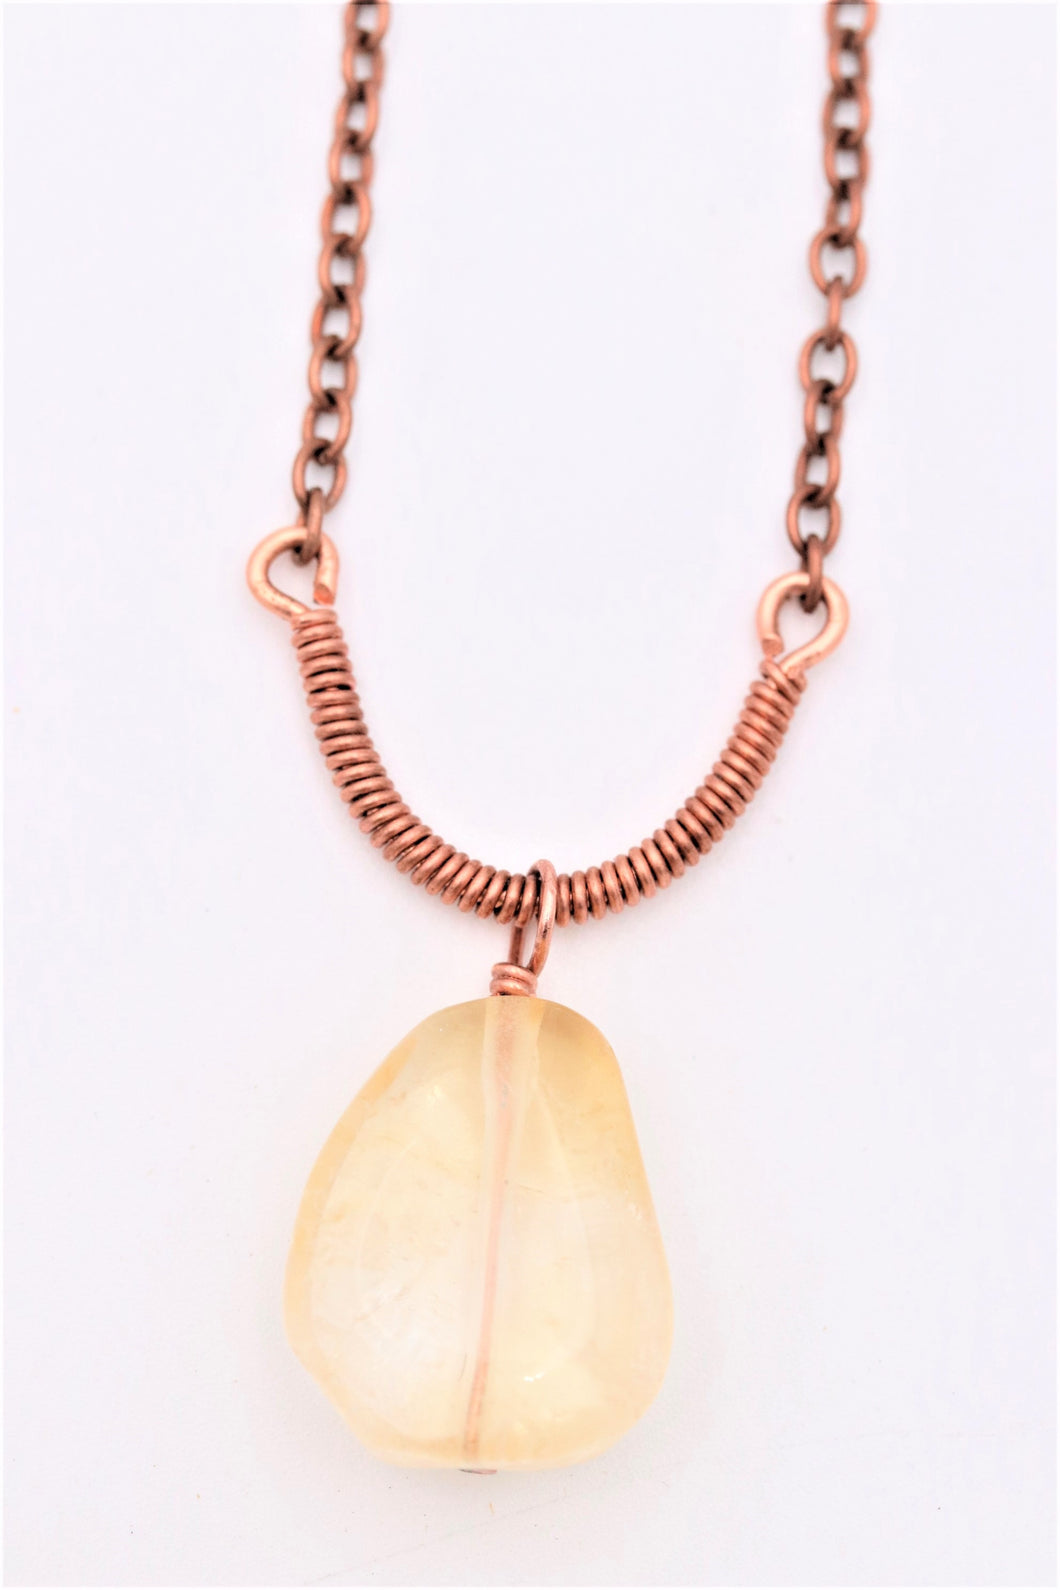 Copper Chain Wire Wrapped Large Citrine Gemstone Necklace